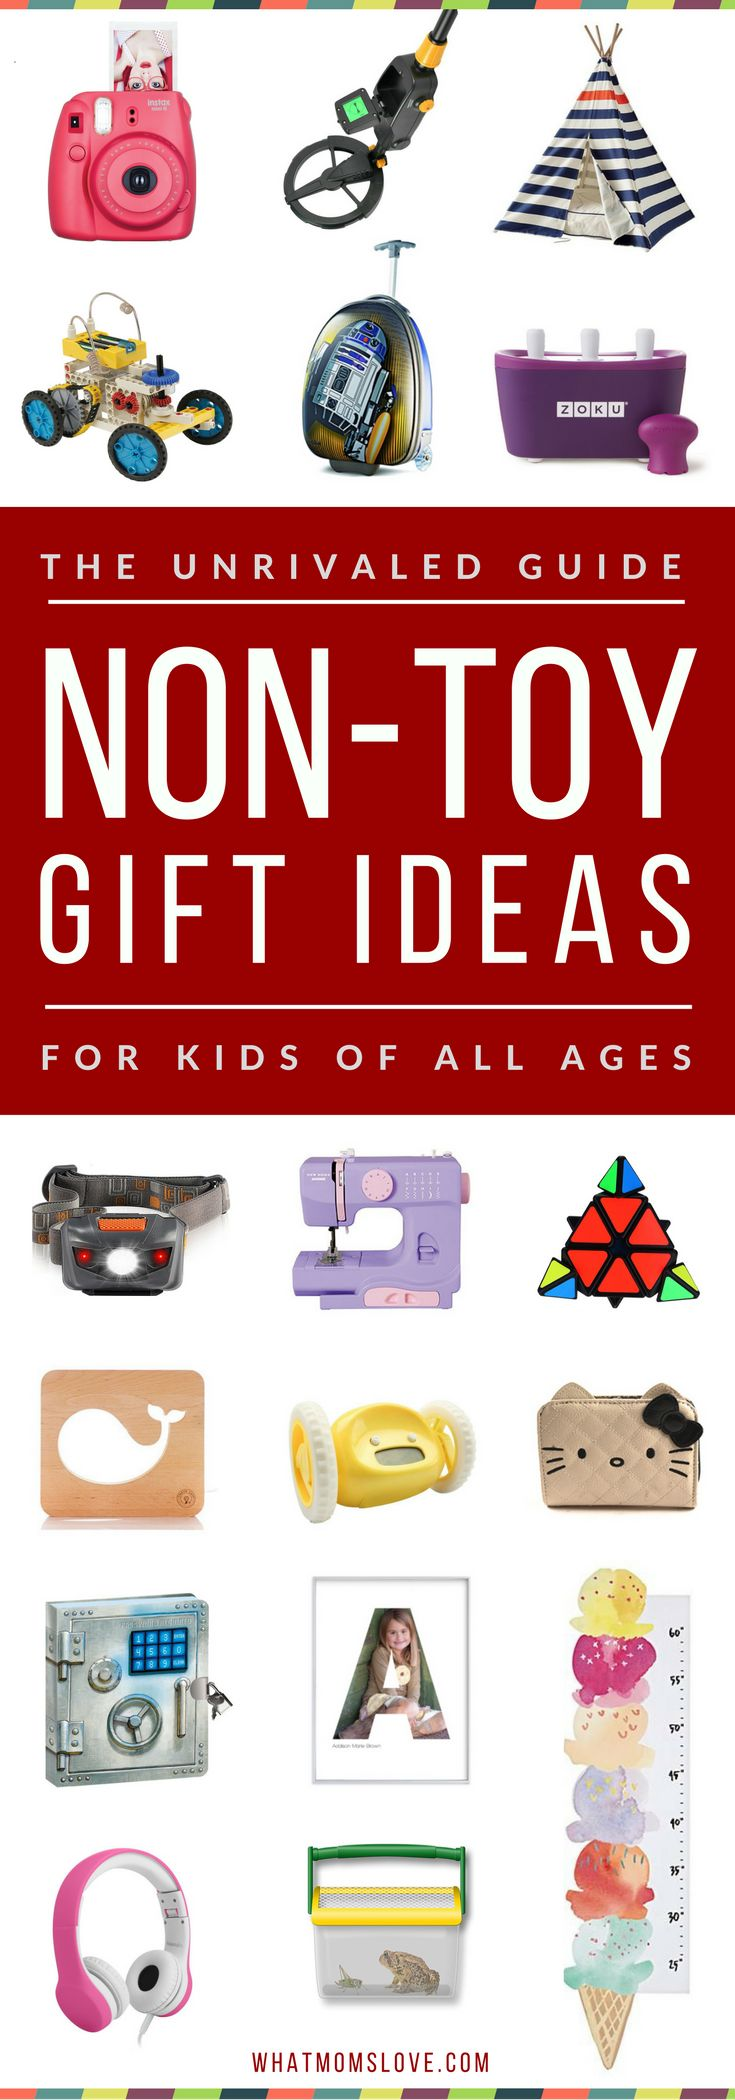 the unrivaled guide to non toy gifts 200 presents for kids of all ages that arent toys